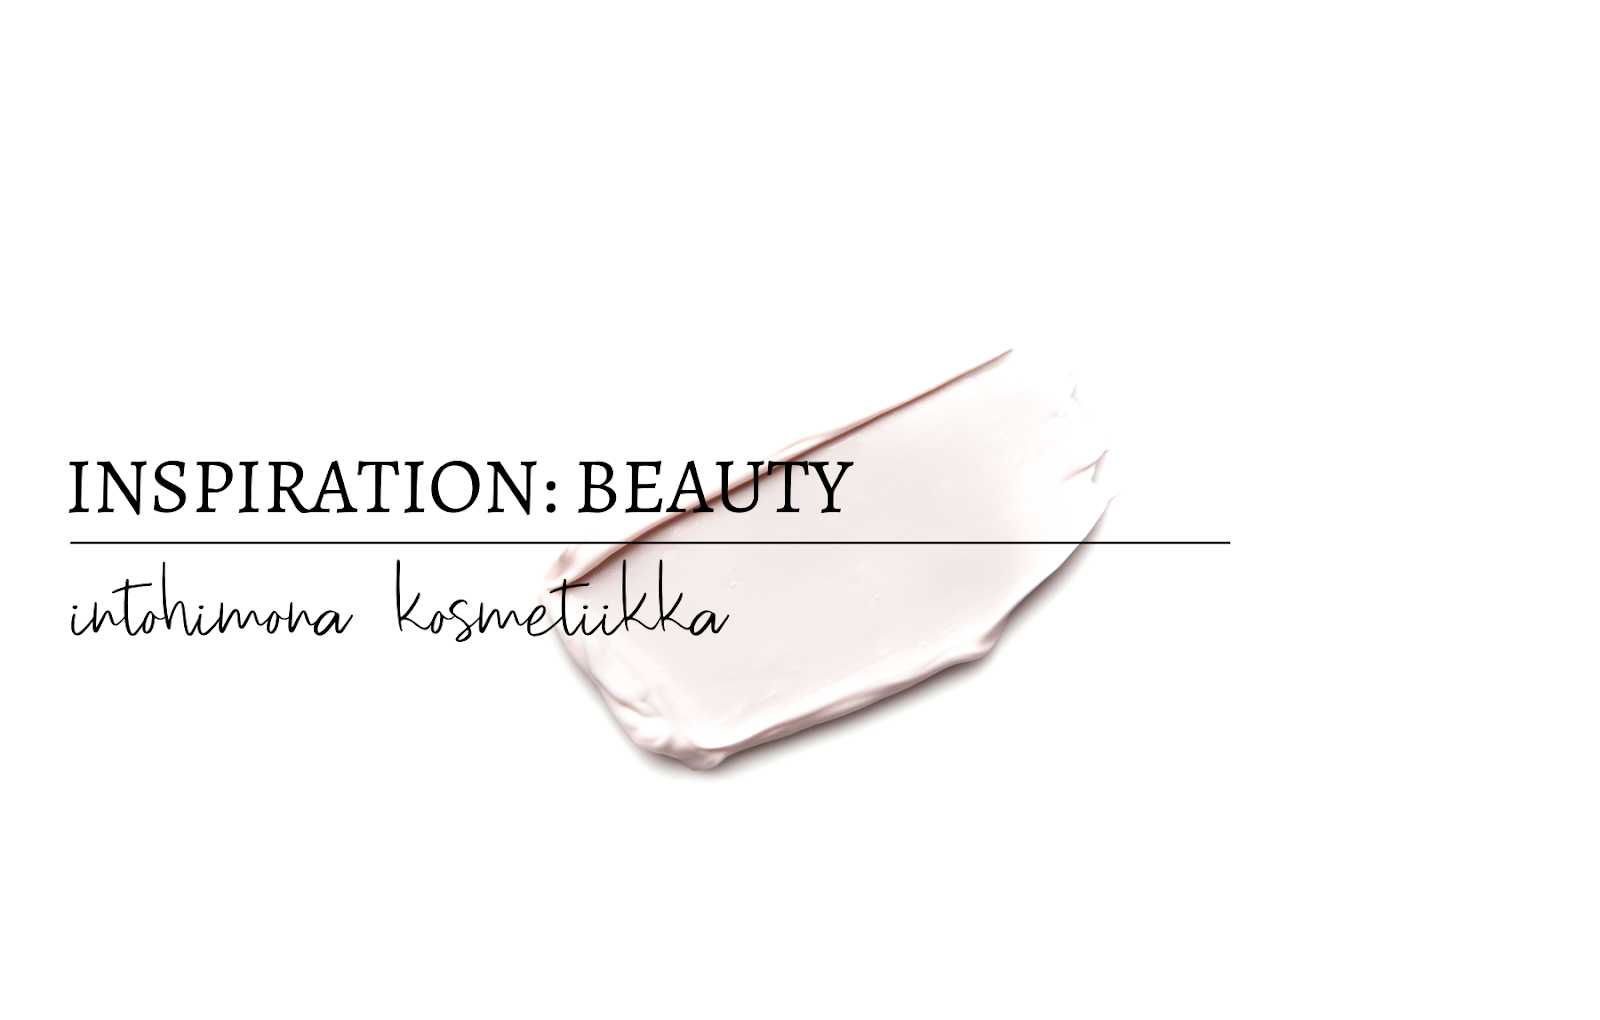 Inspiration: Beauty